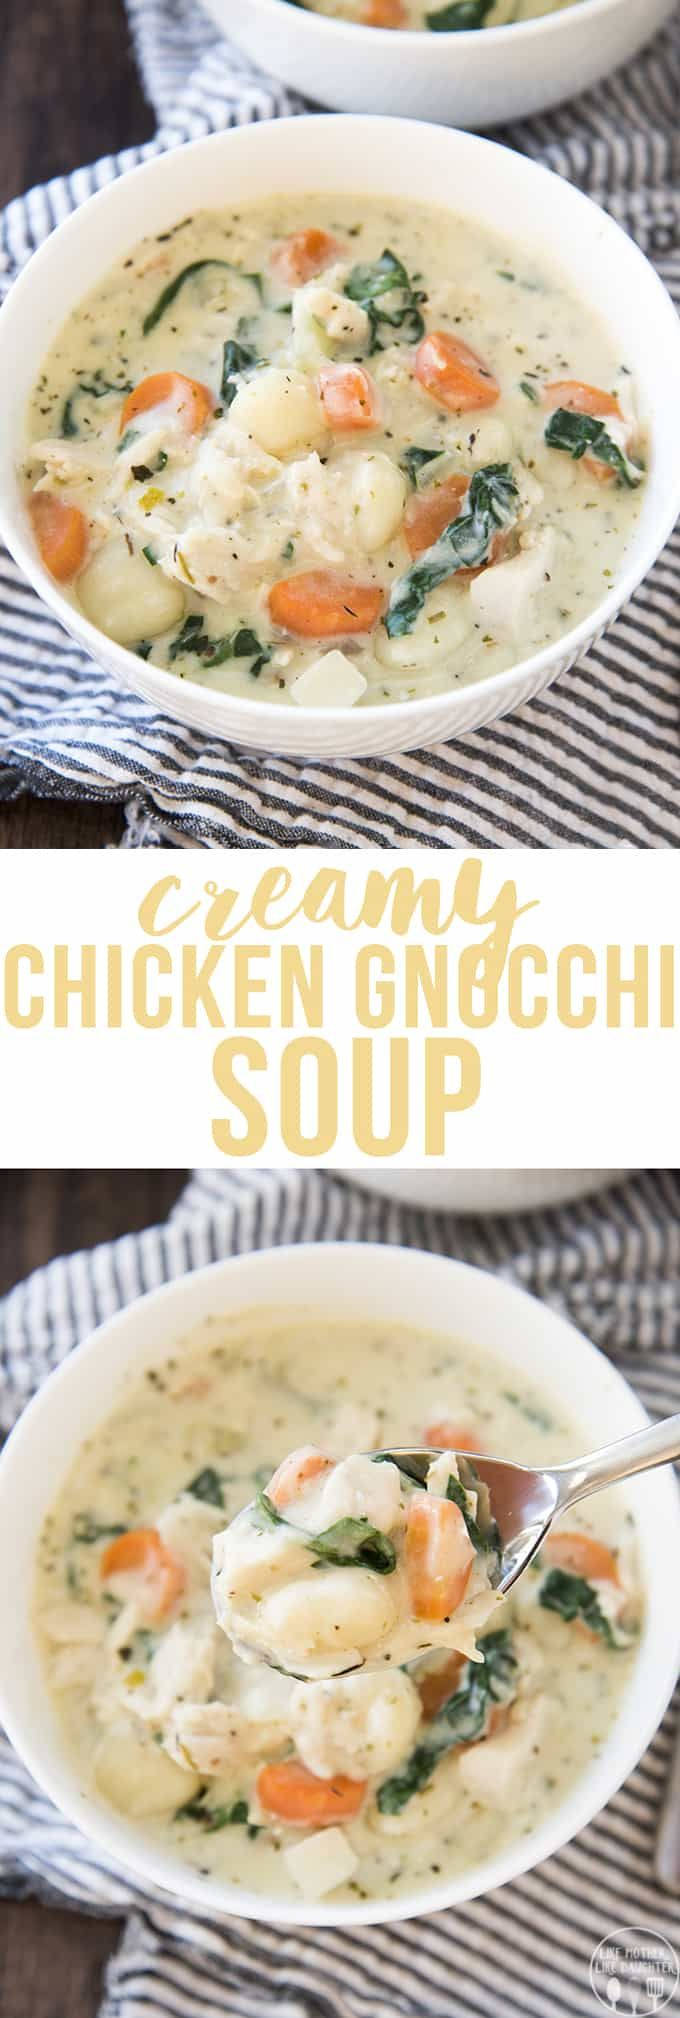 Creamy Chicken Gnocchi Soup is a thick and hearty soup packed full of vegetables, gnocchi, chicken and flavor, its ready in only 30 minutes, with only one pot!